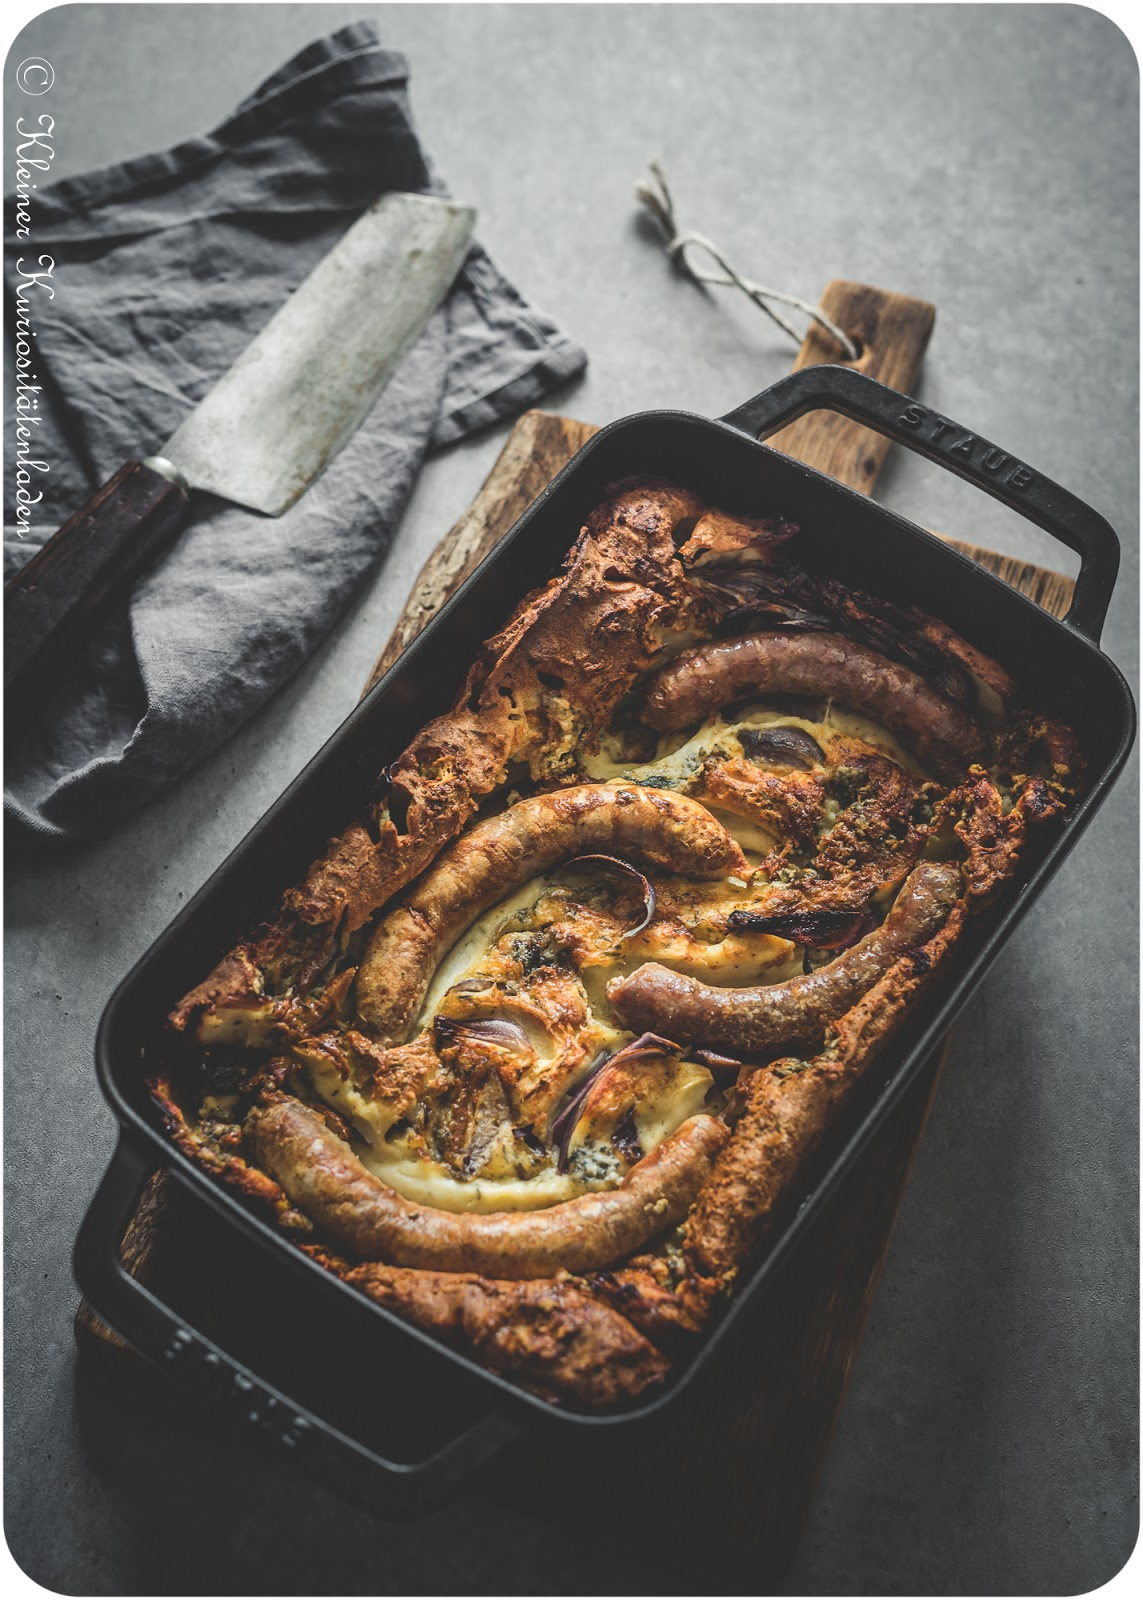 The Breakfast Club ~ British Breakfast: Toad in the Hole